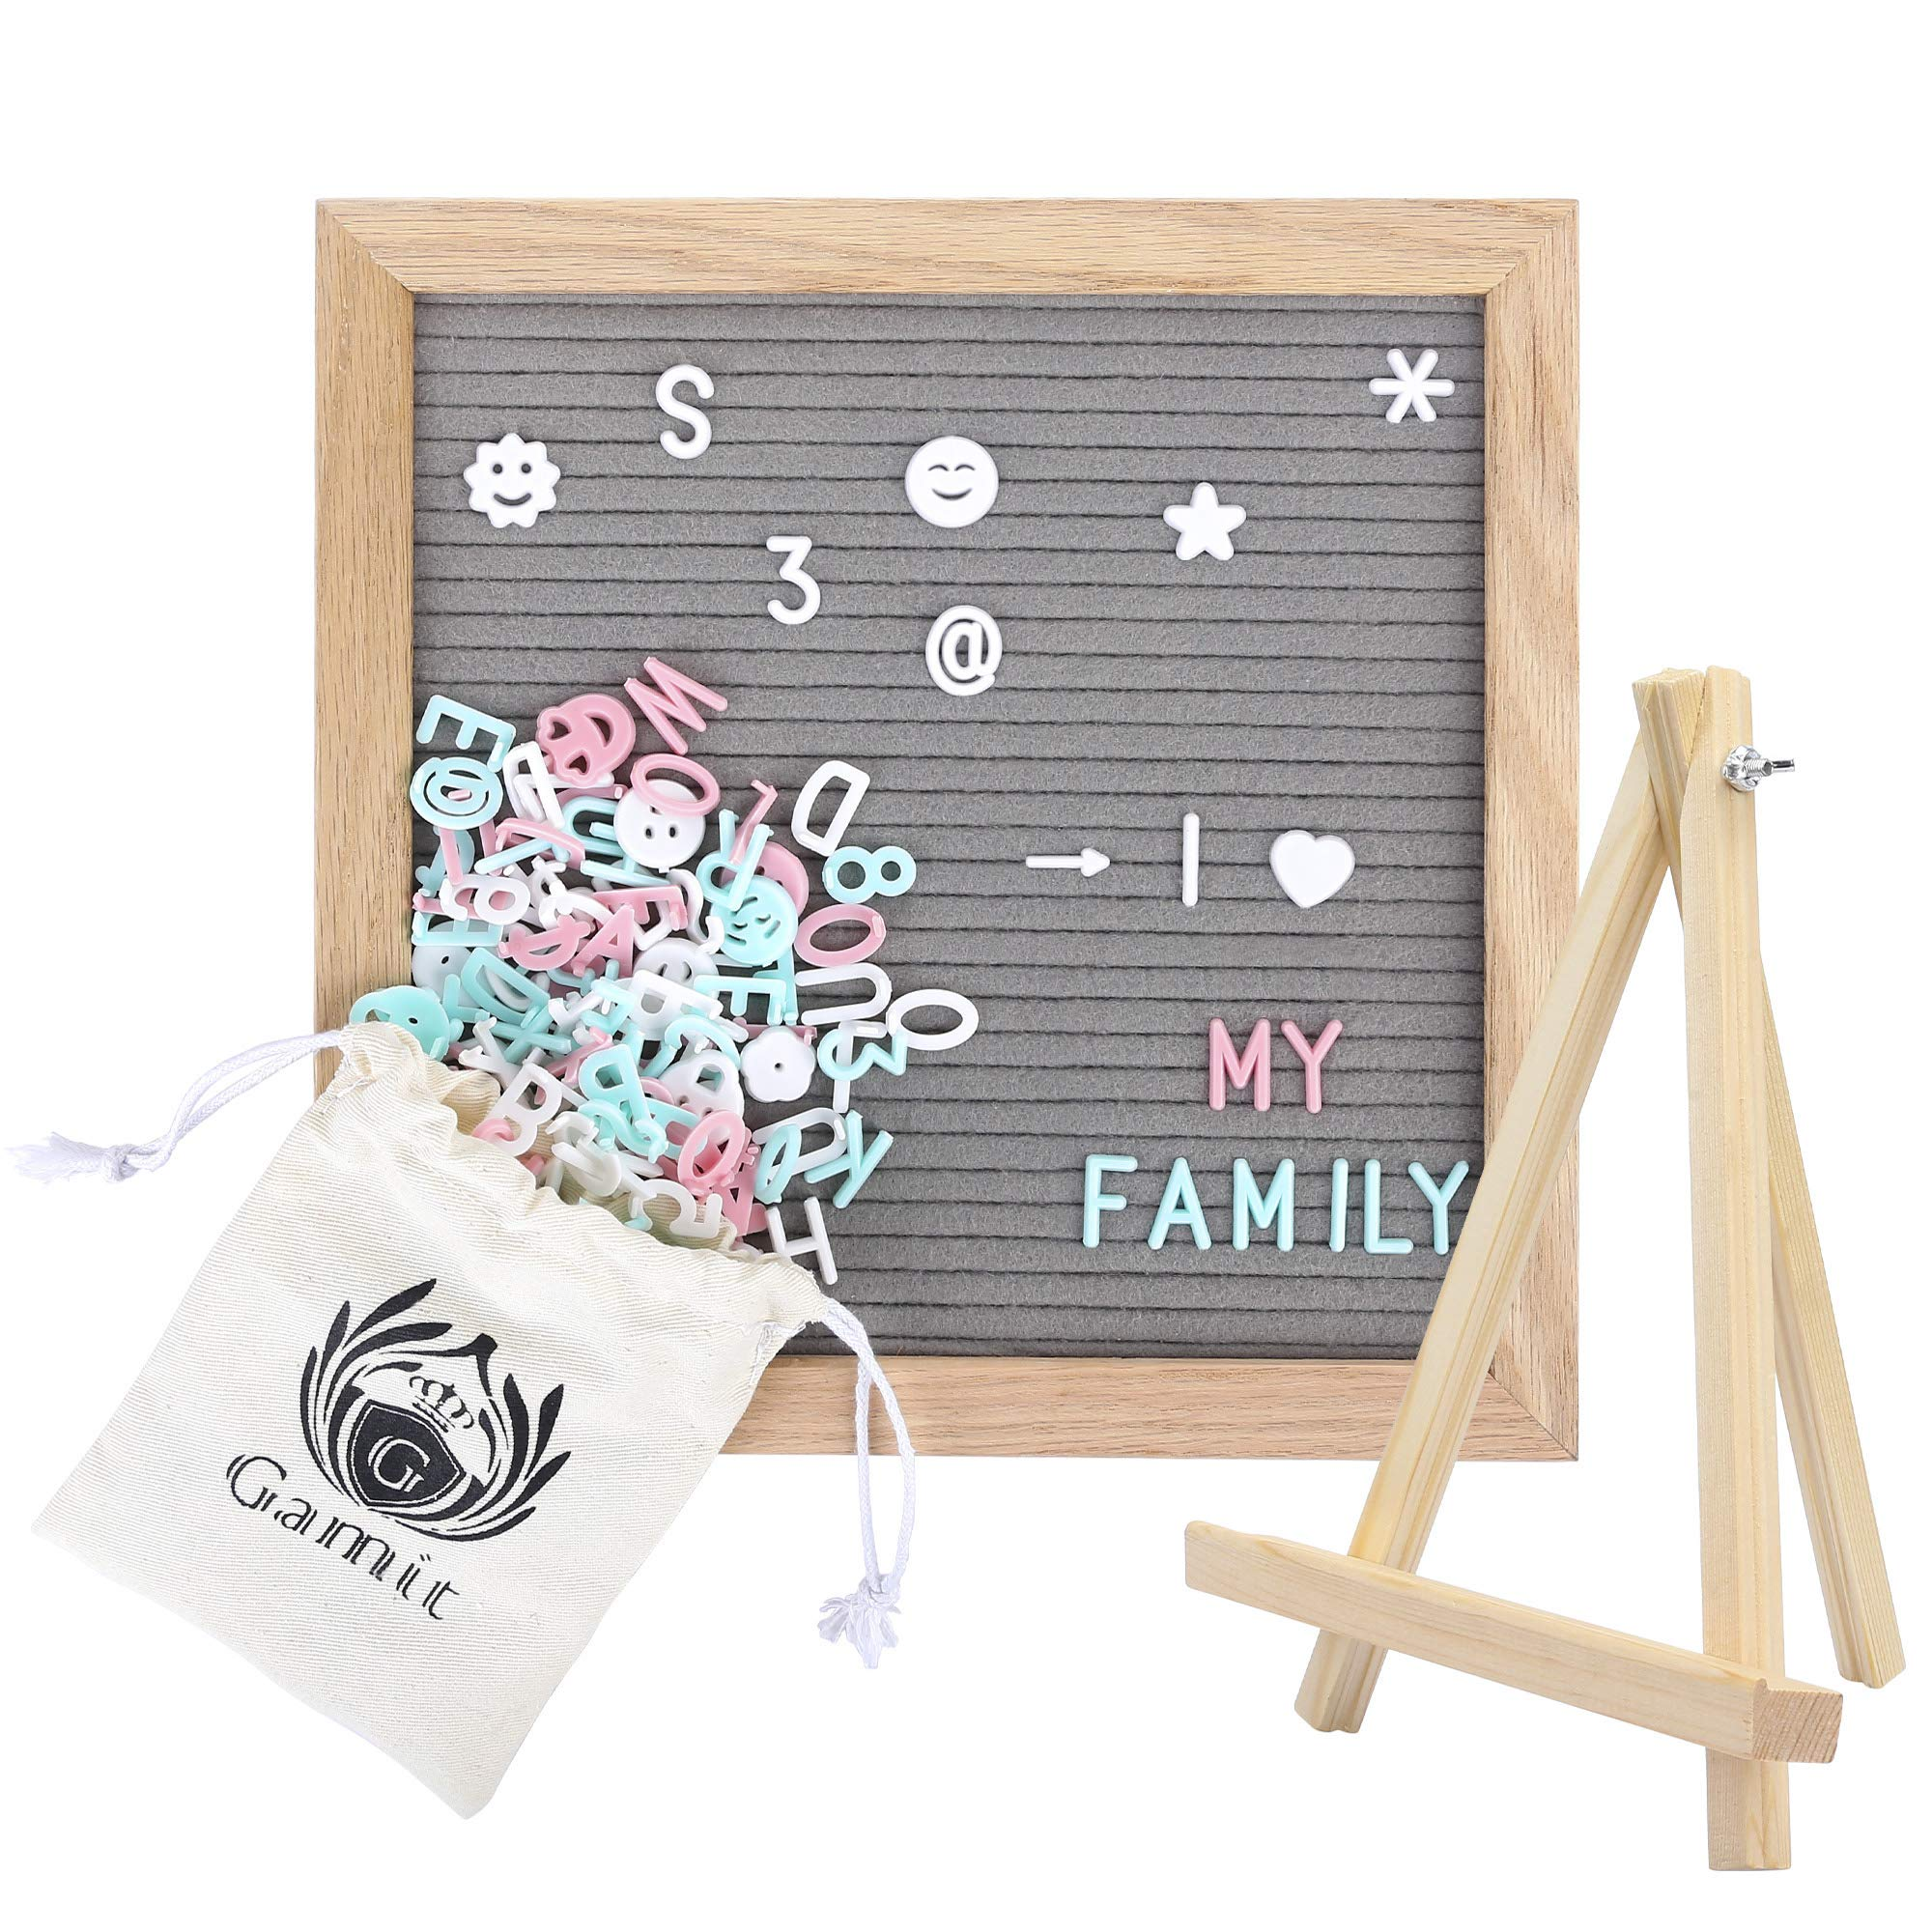 Felt Letter Board&Message Board Oak Wooden Frame 10 x 10 inches,Letter Organizer with Stand,510 White+Blue+Pink Letters and Symbols, Gray Changeable Letter Board&Word Board with Letters by G GAMIT